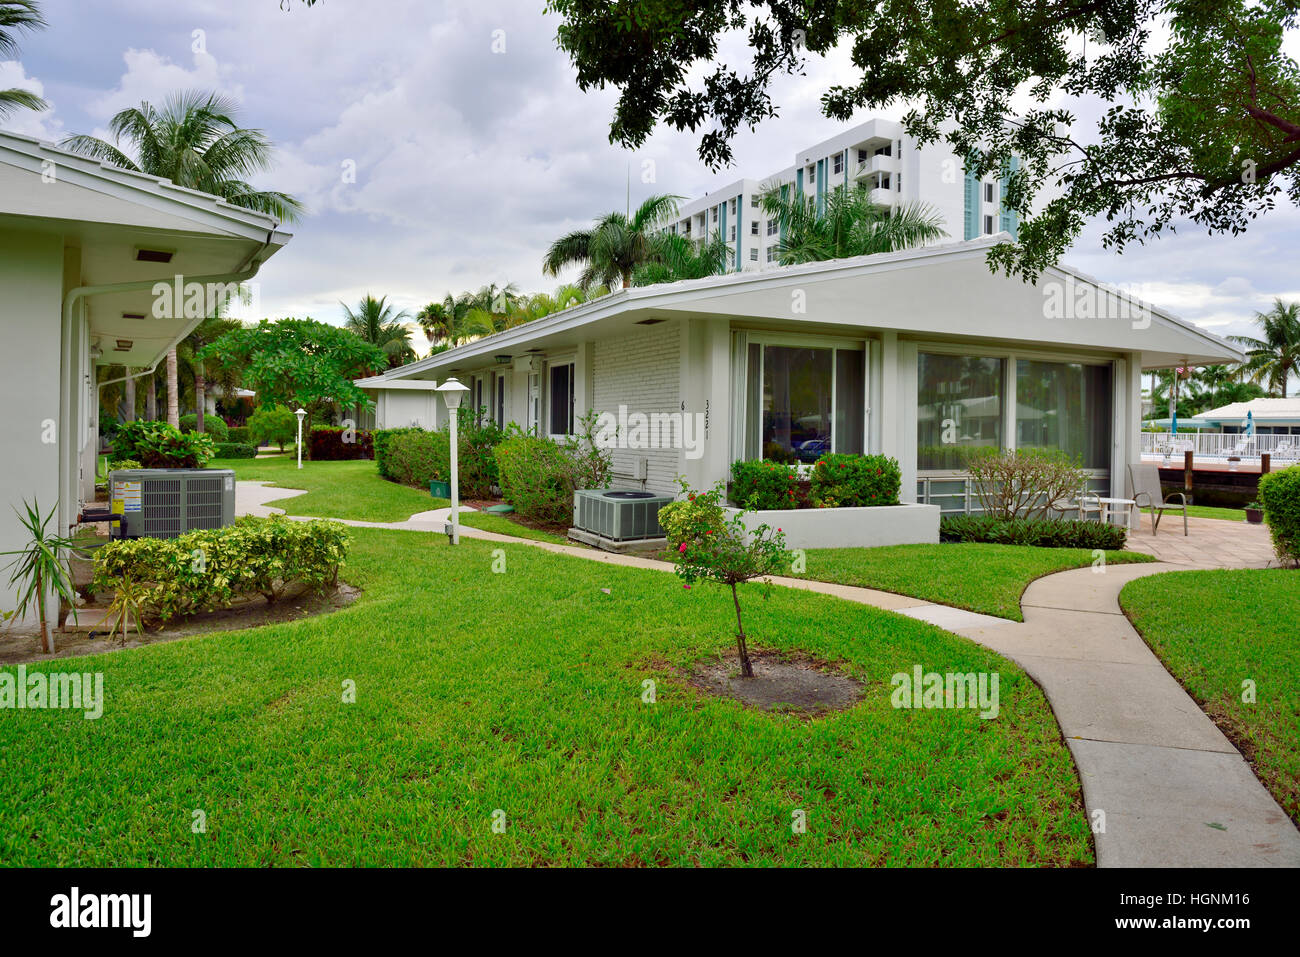 Coop residential housing Pompano Beach, Florida, - Stock Image